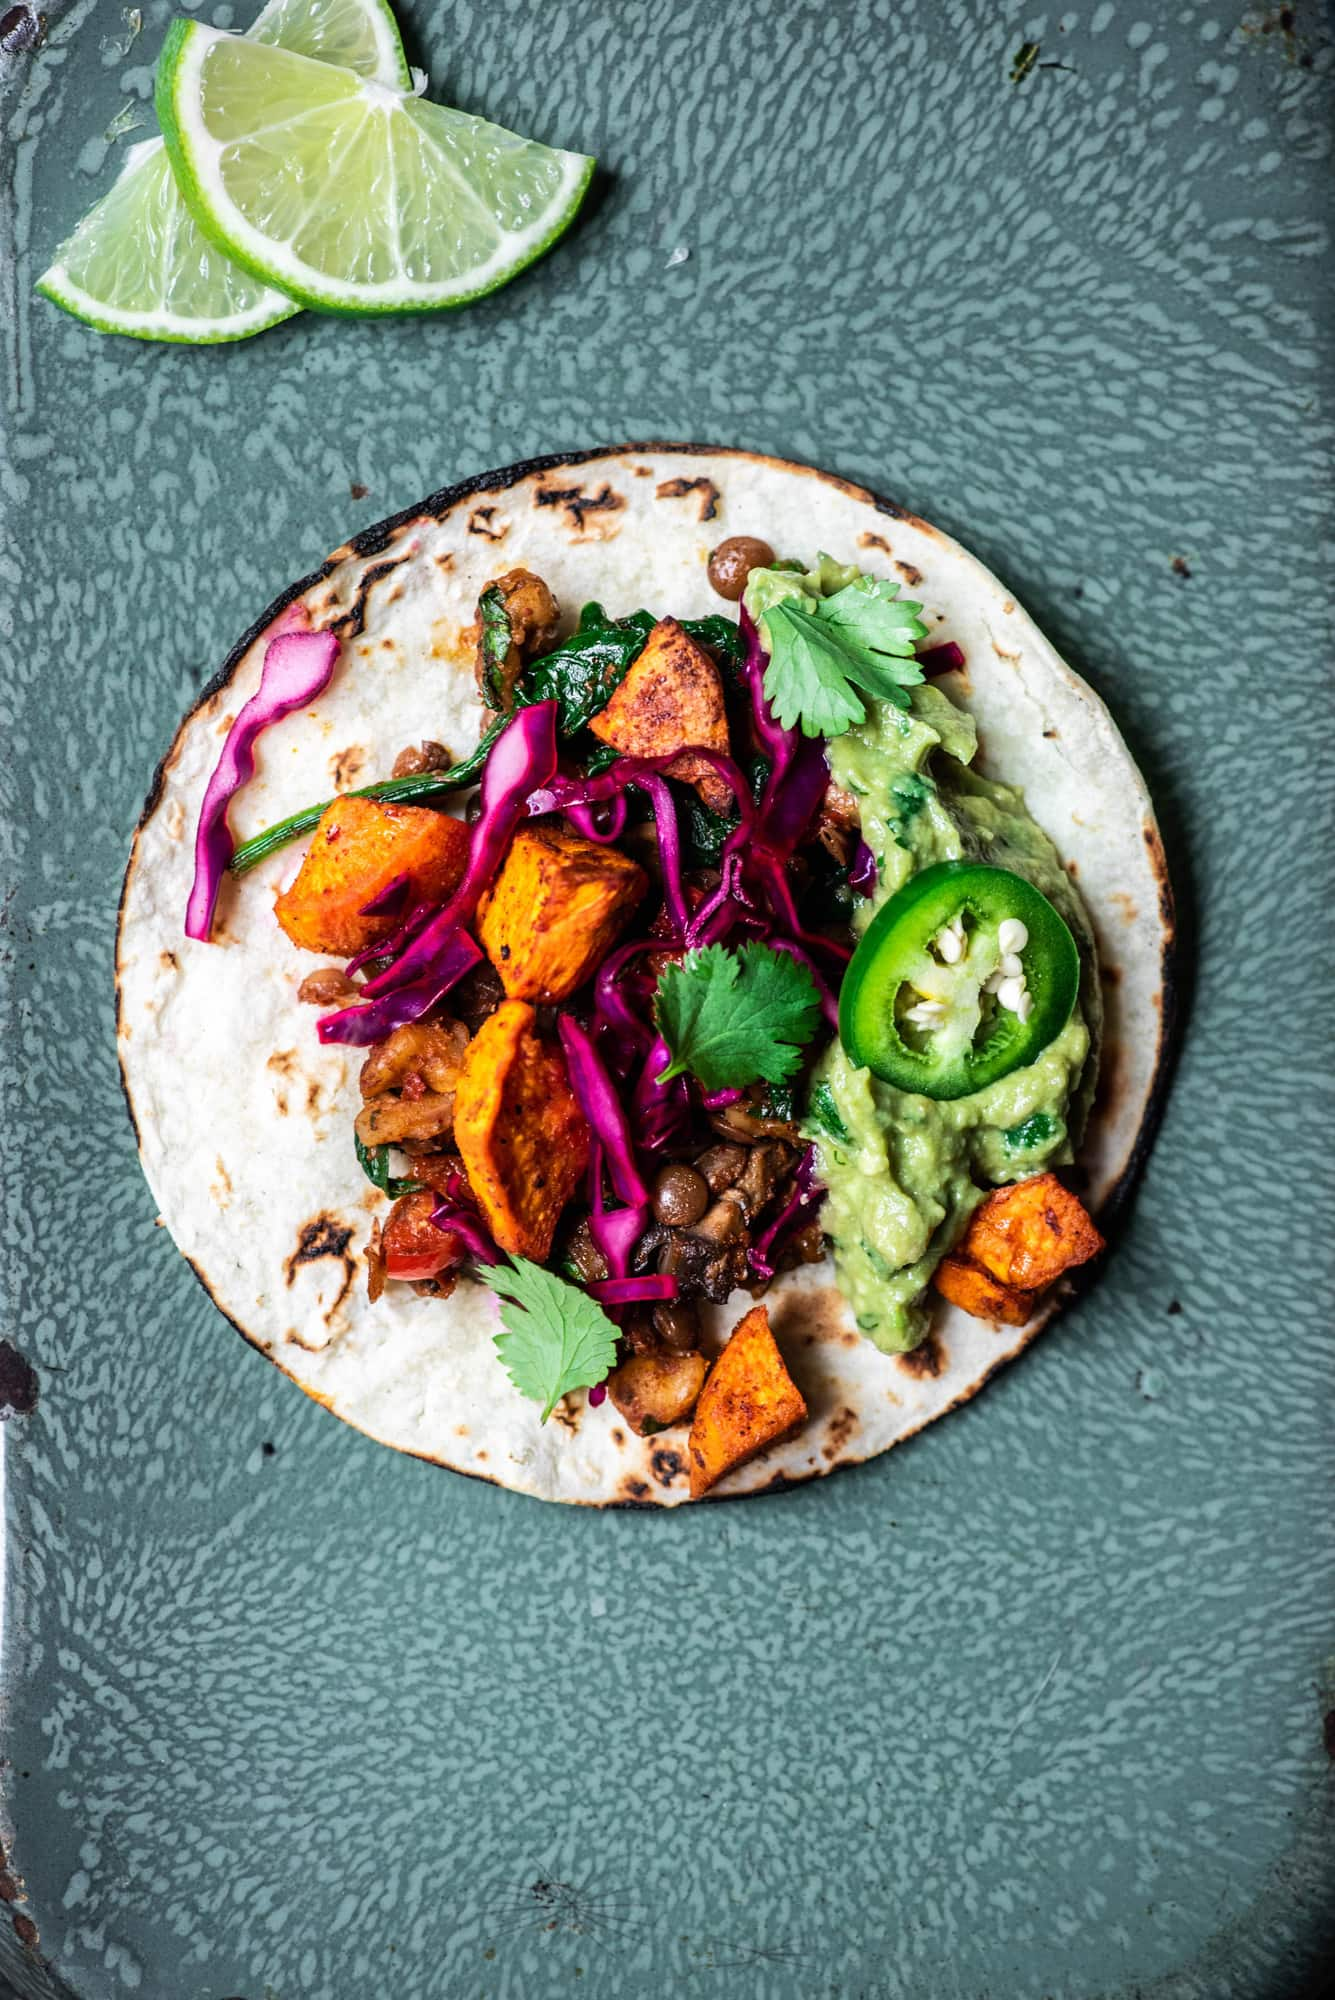 Overhead view of vegan lentil walnut tacos with roasted sweet potatoes, cabbage and guacamole on an antique serving tray